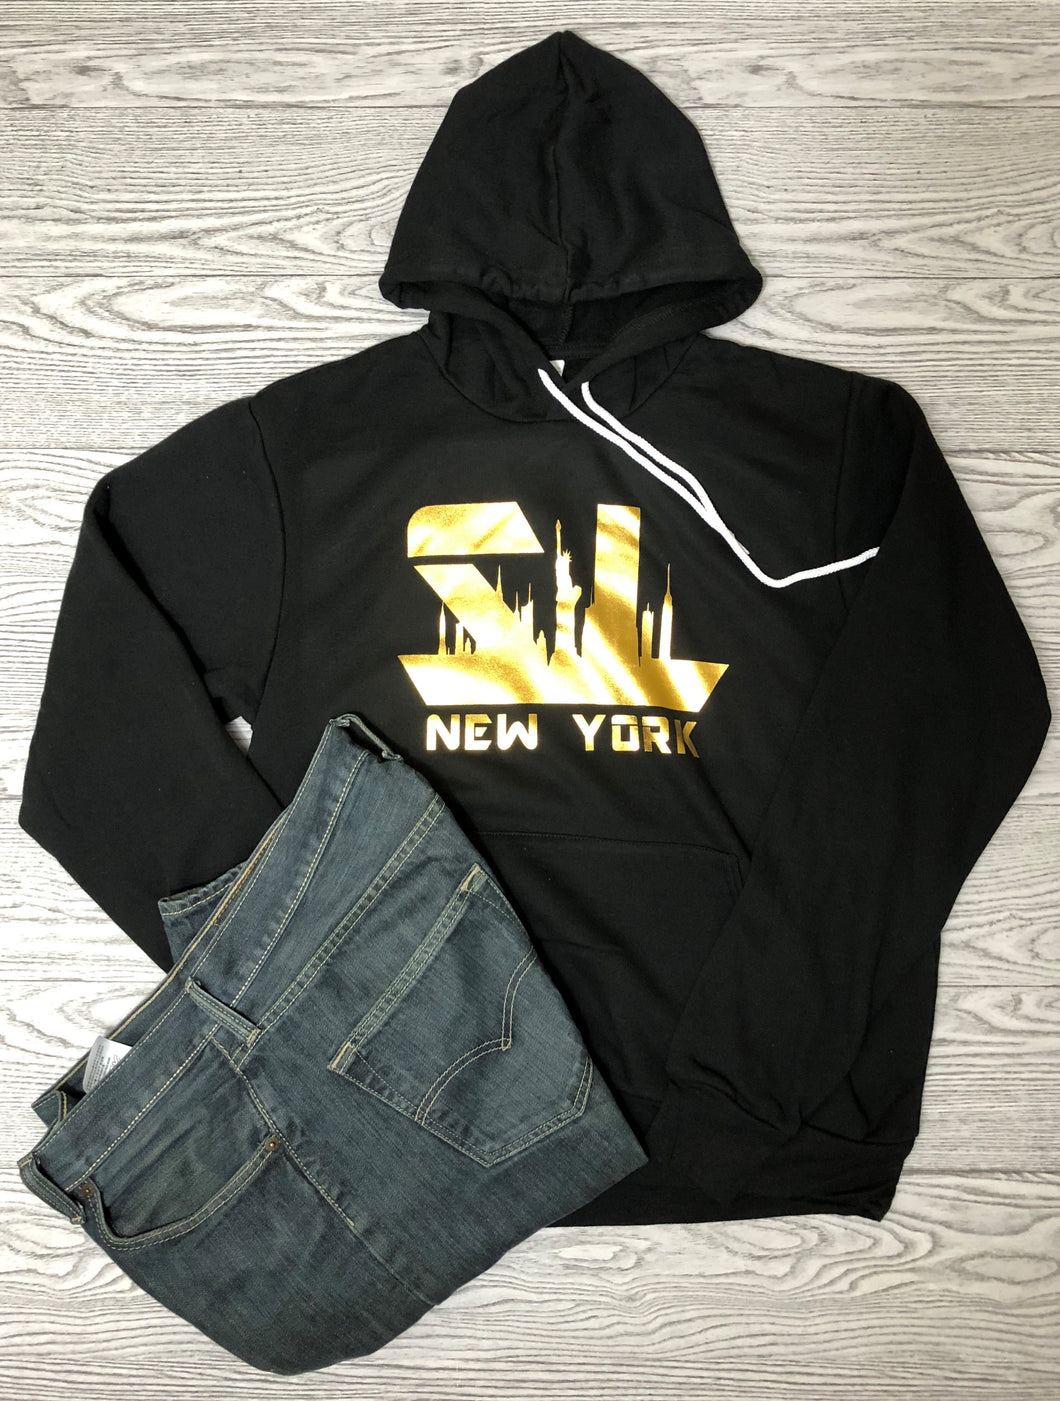 New York Gold Unisex Sponge Fleece Pullover Hoodie